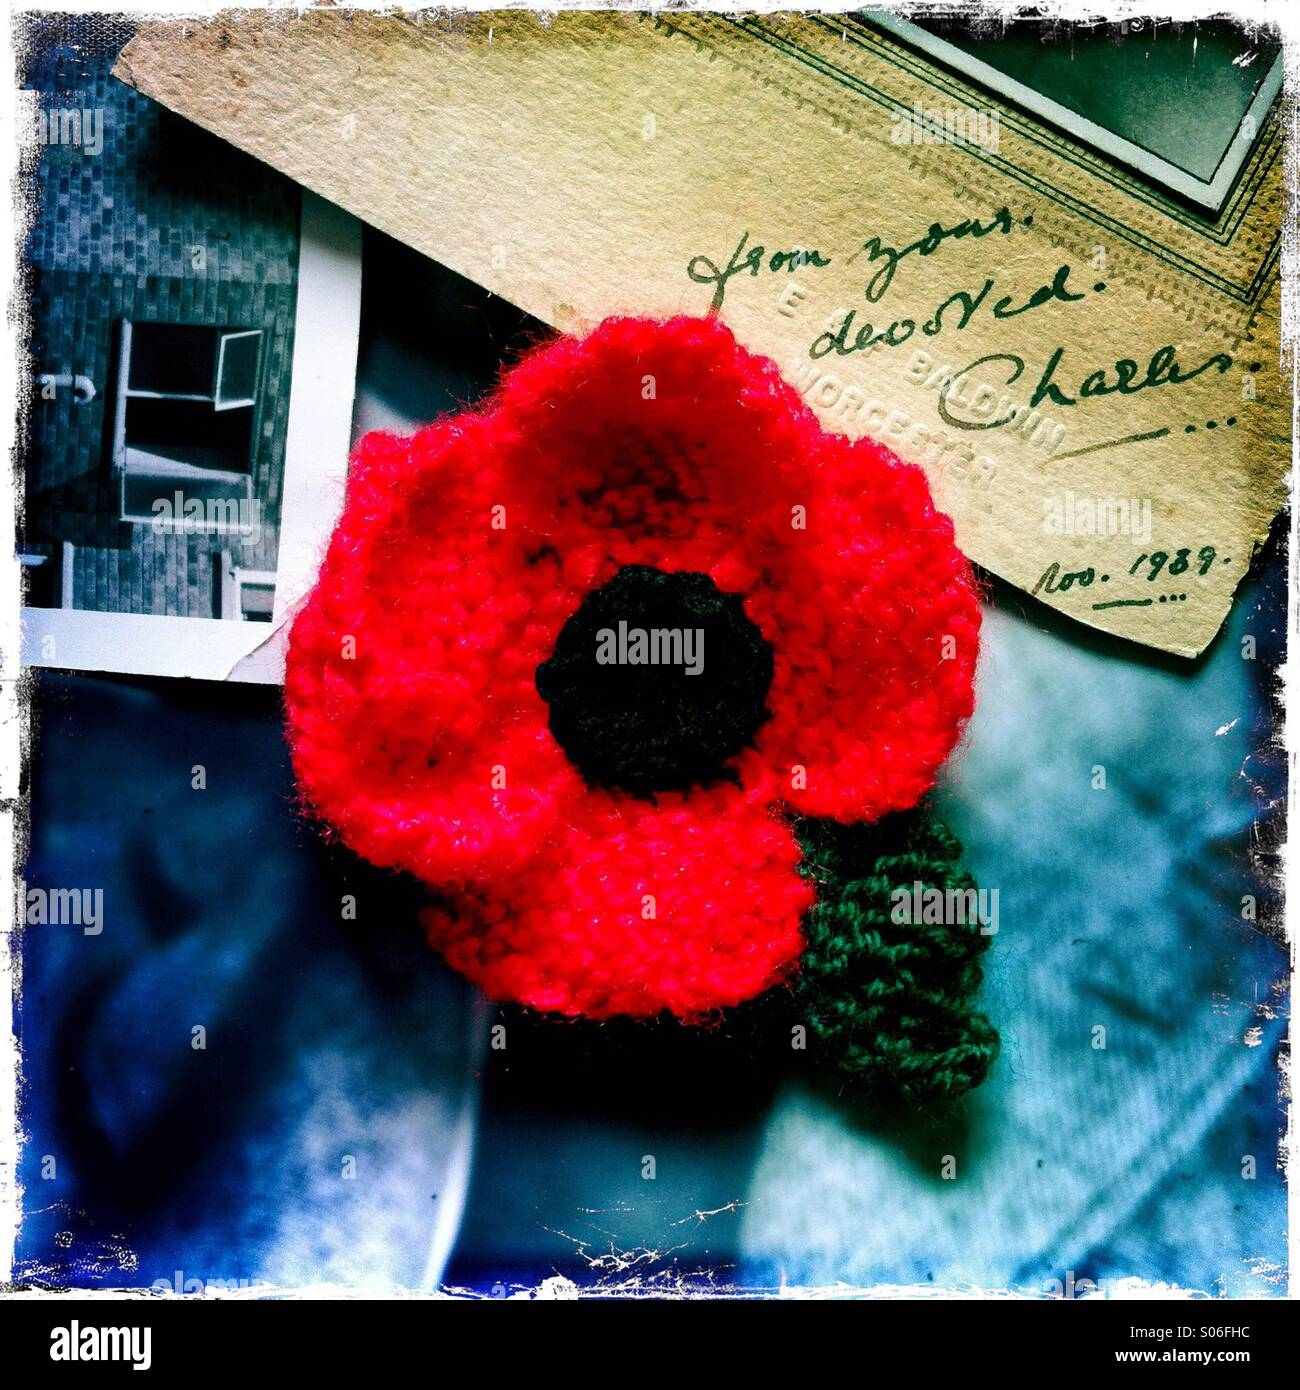 A red poppy amidst old photos - Stock Image